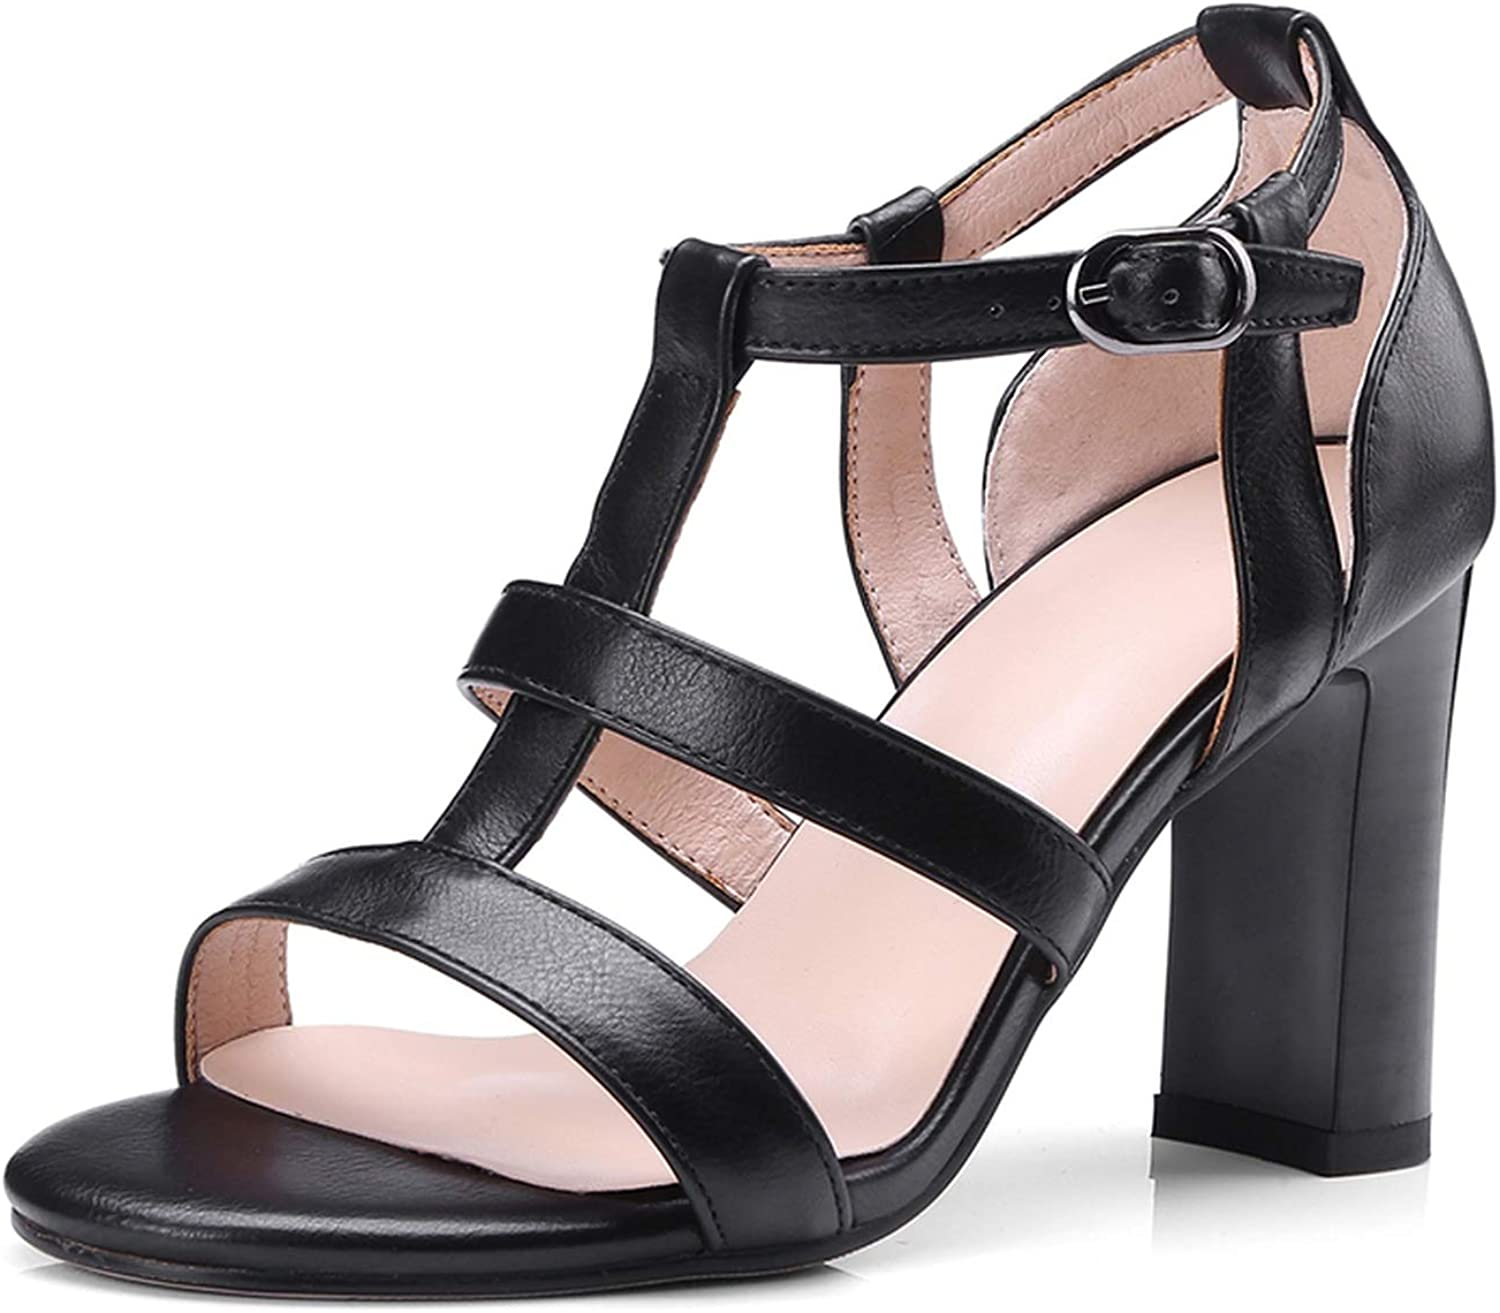 T-Strap Woman shoes Woman Sandals Square high Heels Leisure Summer Sandal